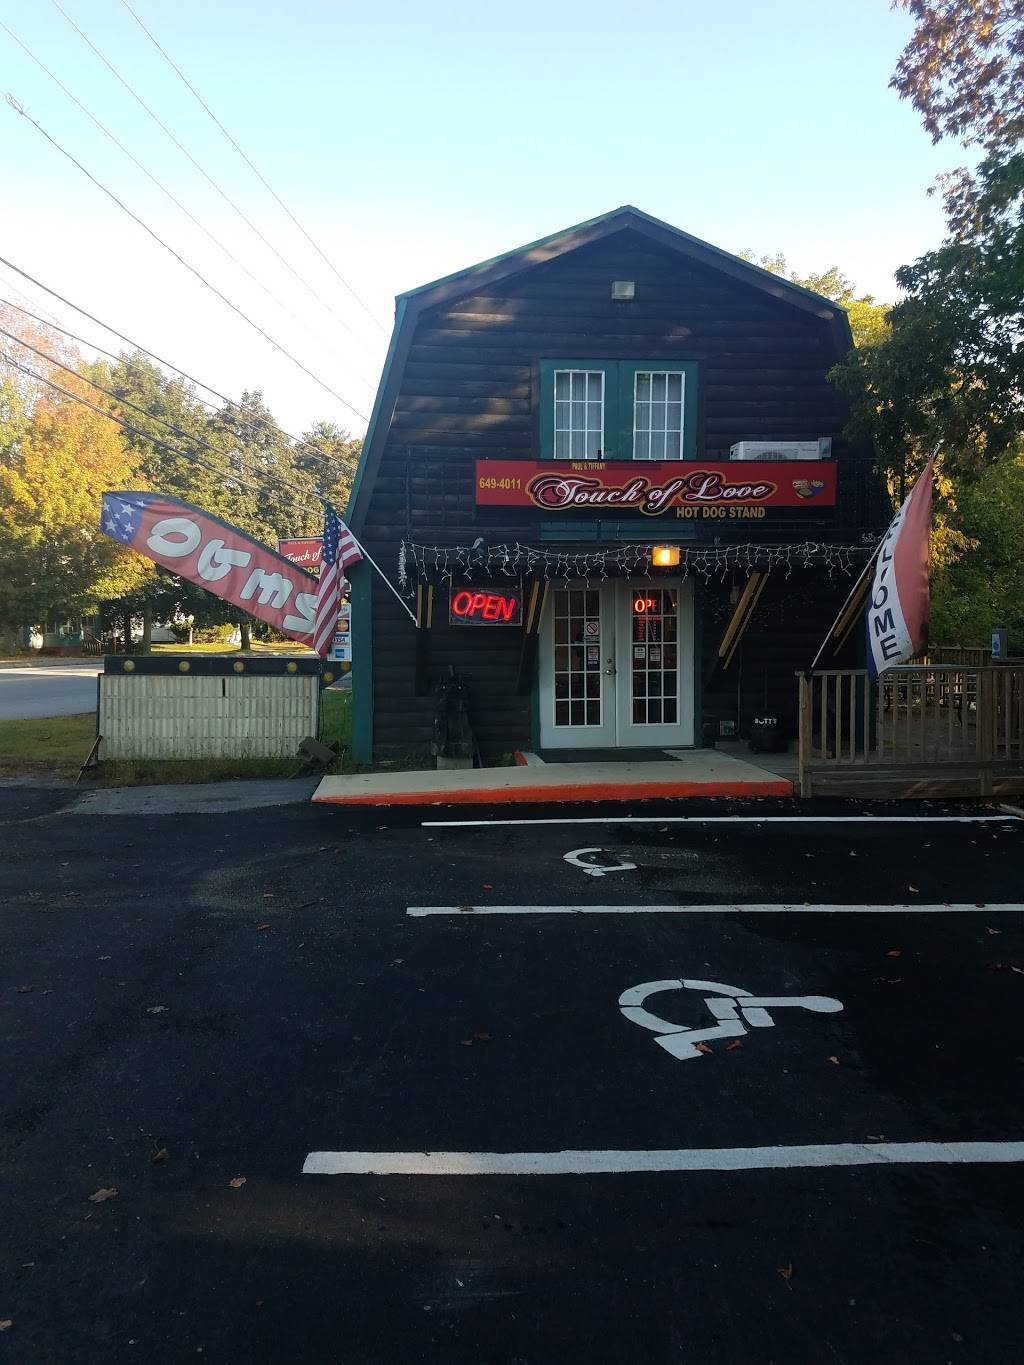 Touch of Love | restaurant | 222-248 Upper Main St, Fairfield, ME 04937, USA | 2076494011 OR +1 207-649-4011